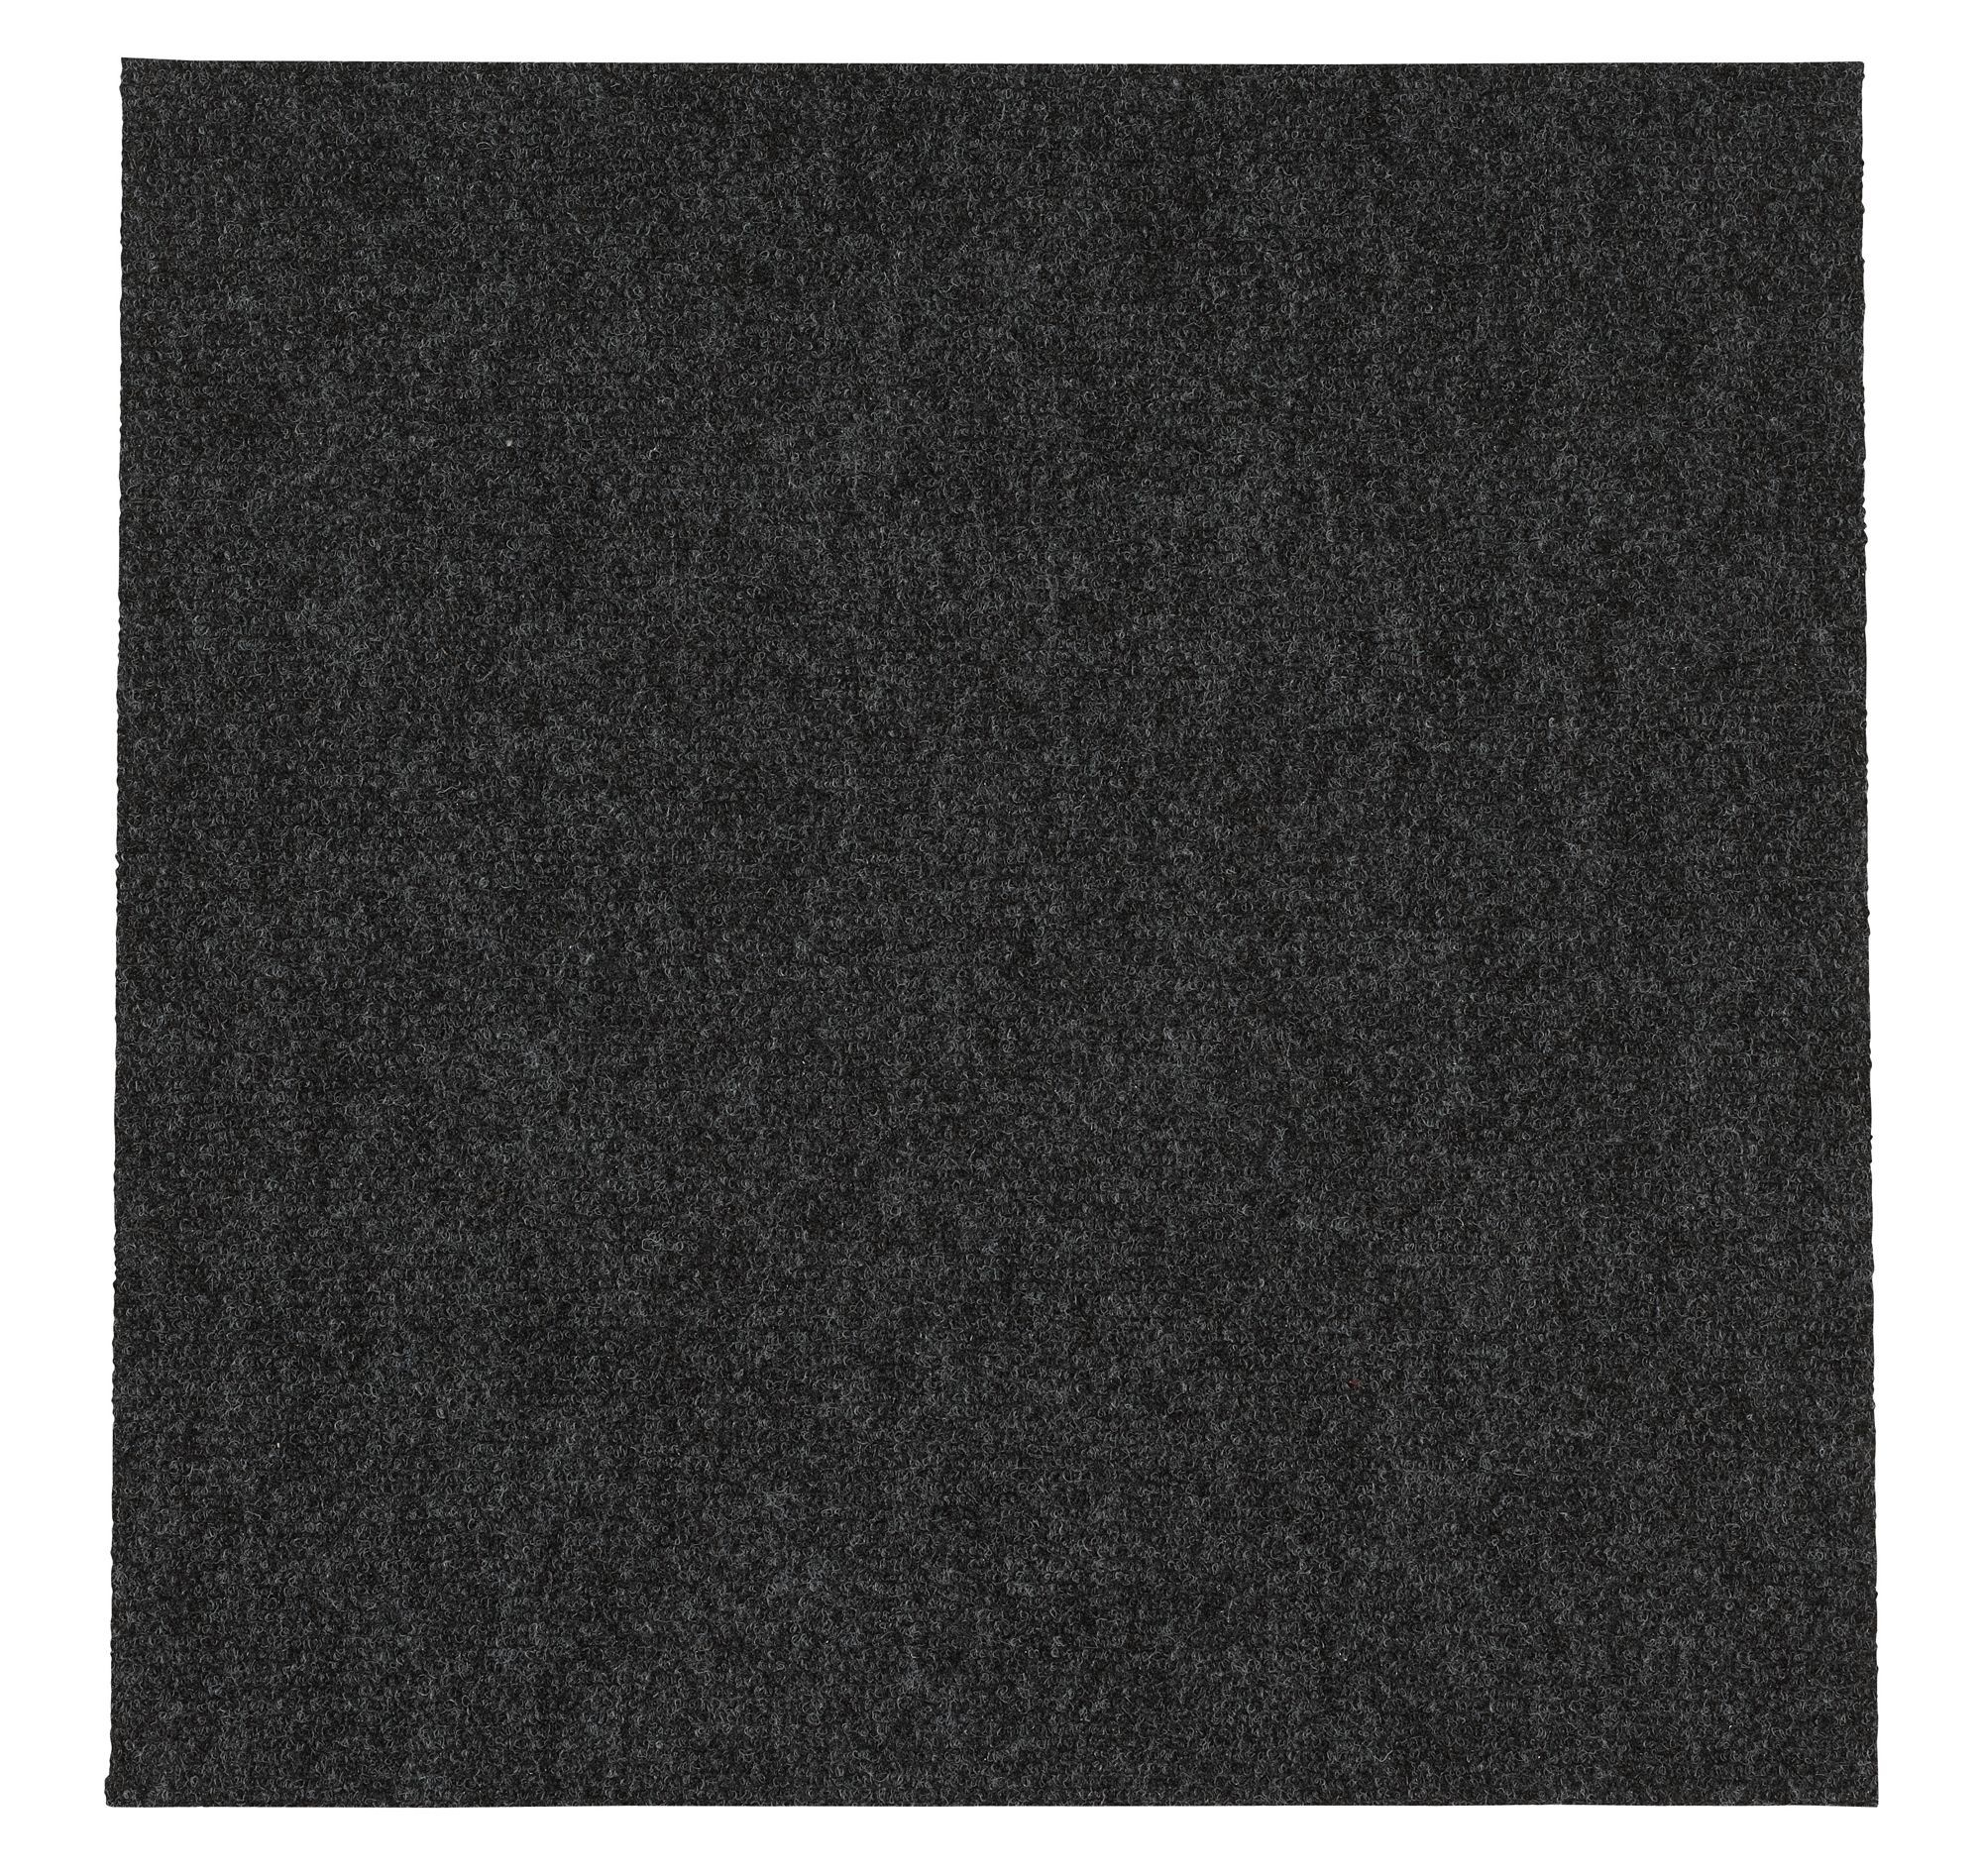 B&Q Grey Loop Carpet tile, (L)50cm, Pack of 10 | Departments | DIY at B&Q